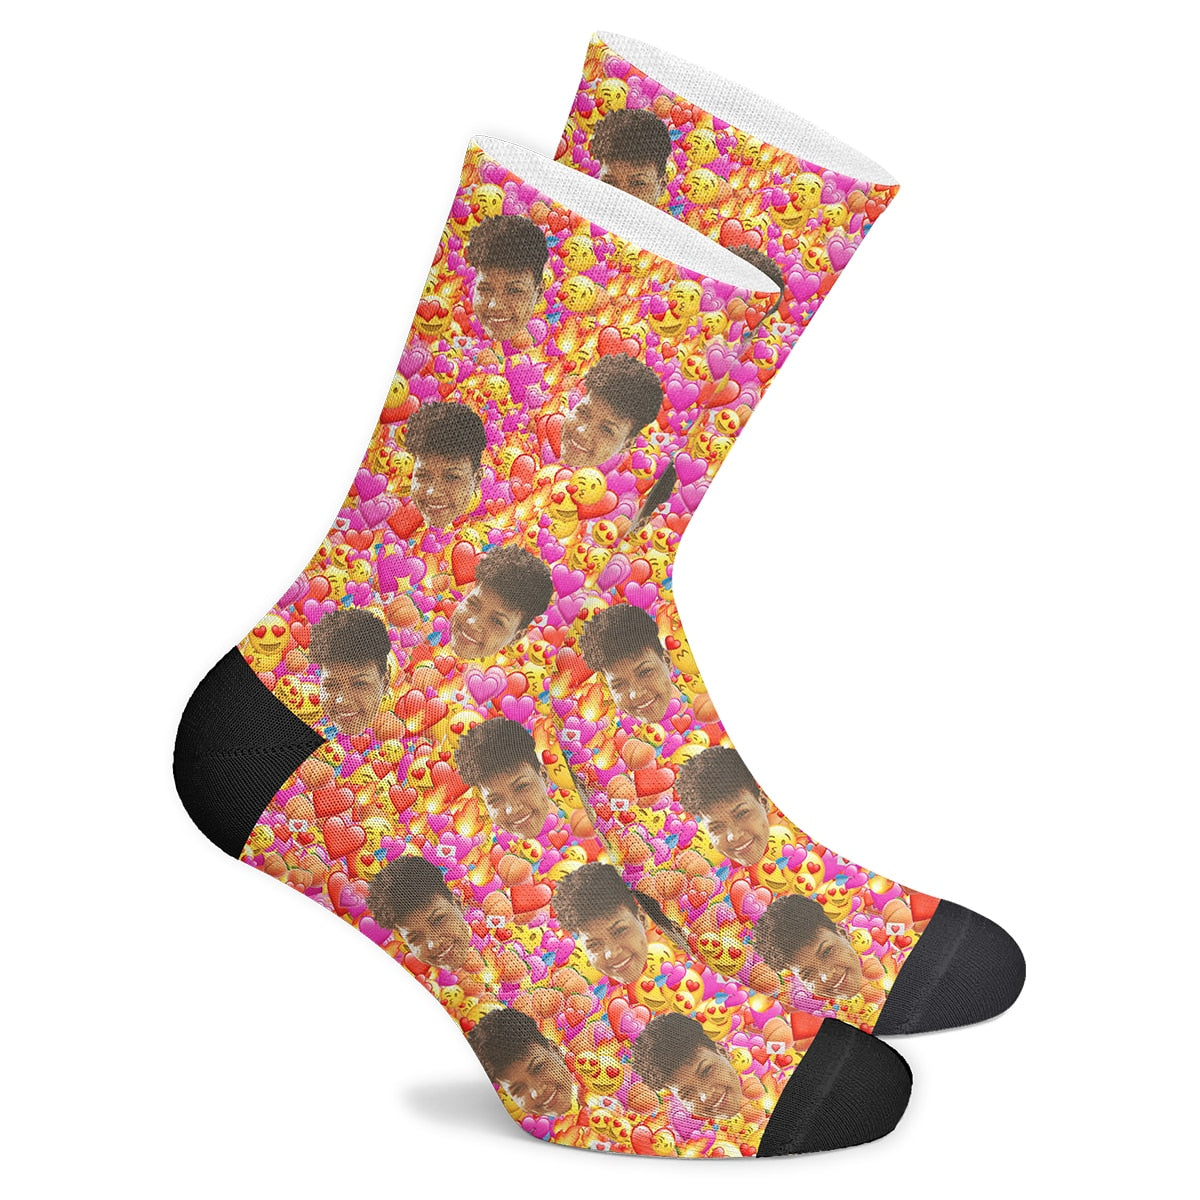 Custom EmojiSocks - Make Face Socks